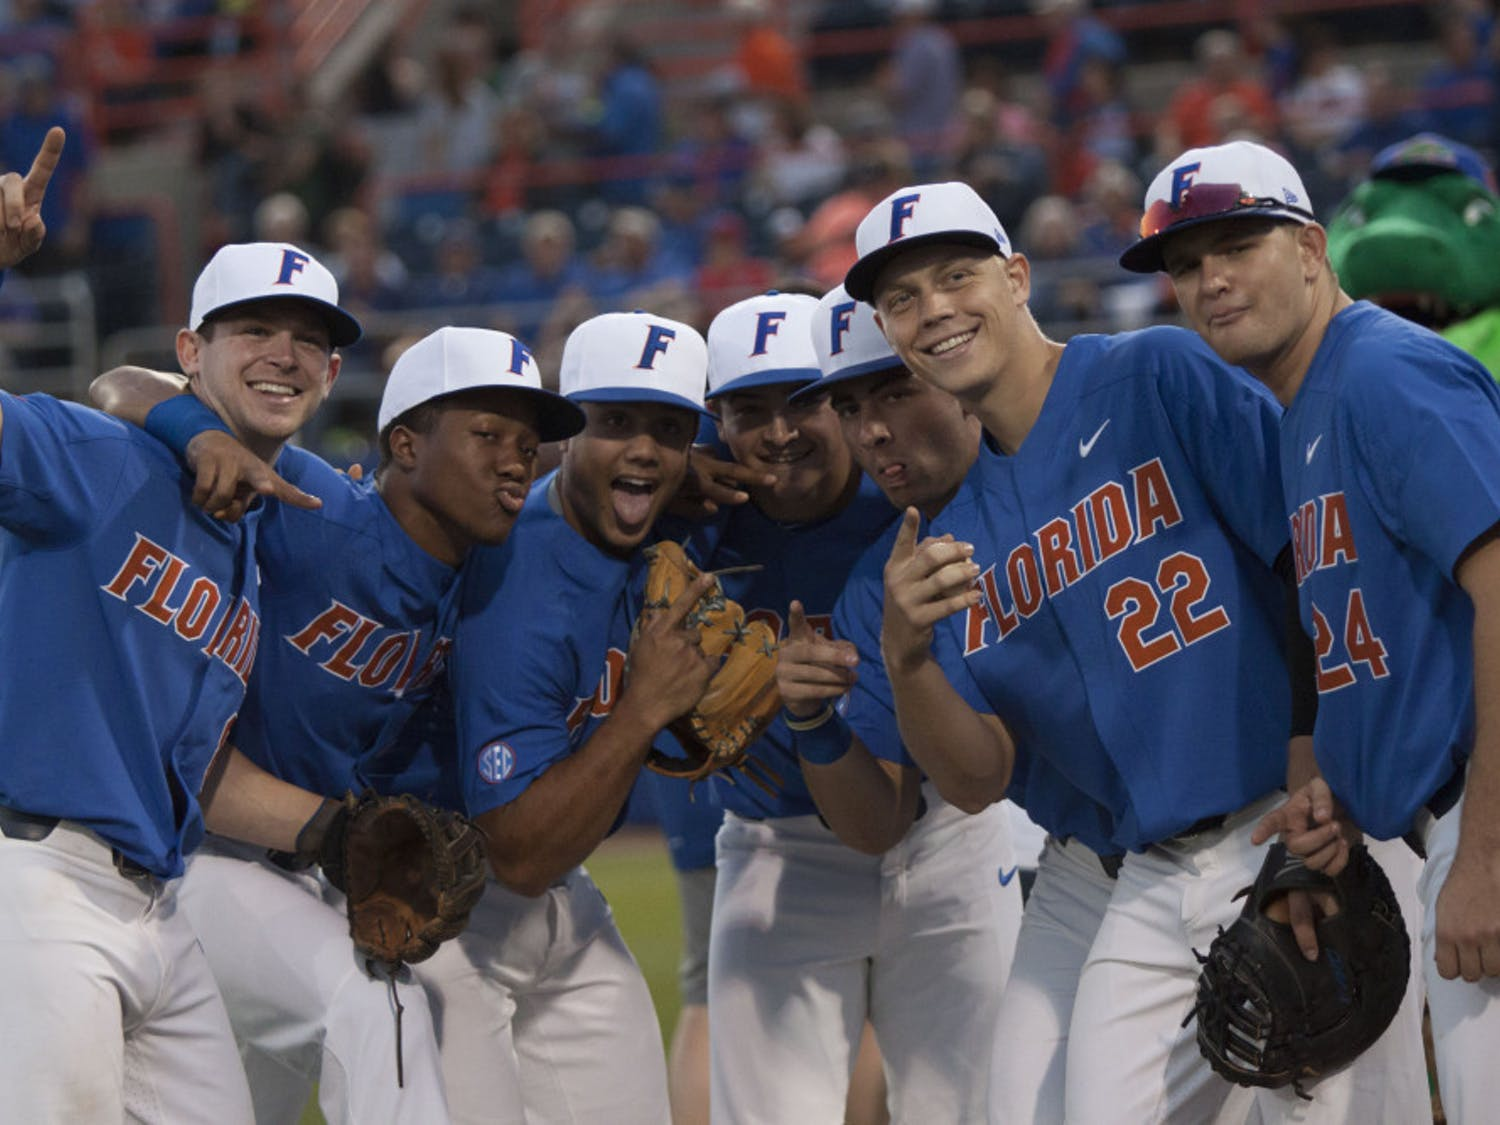 Florida's baseball team poses for a photo before its 2-0 win against Miami on Feb. 25, 2017, at McKethan Stadium.